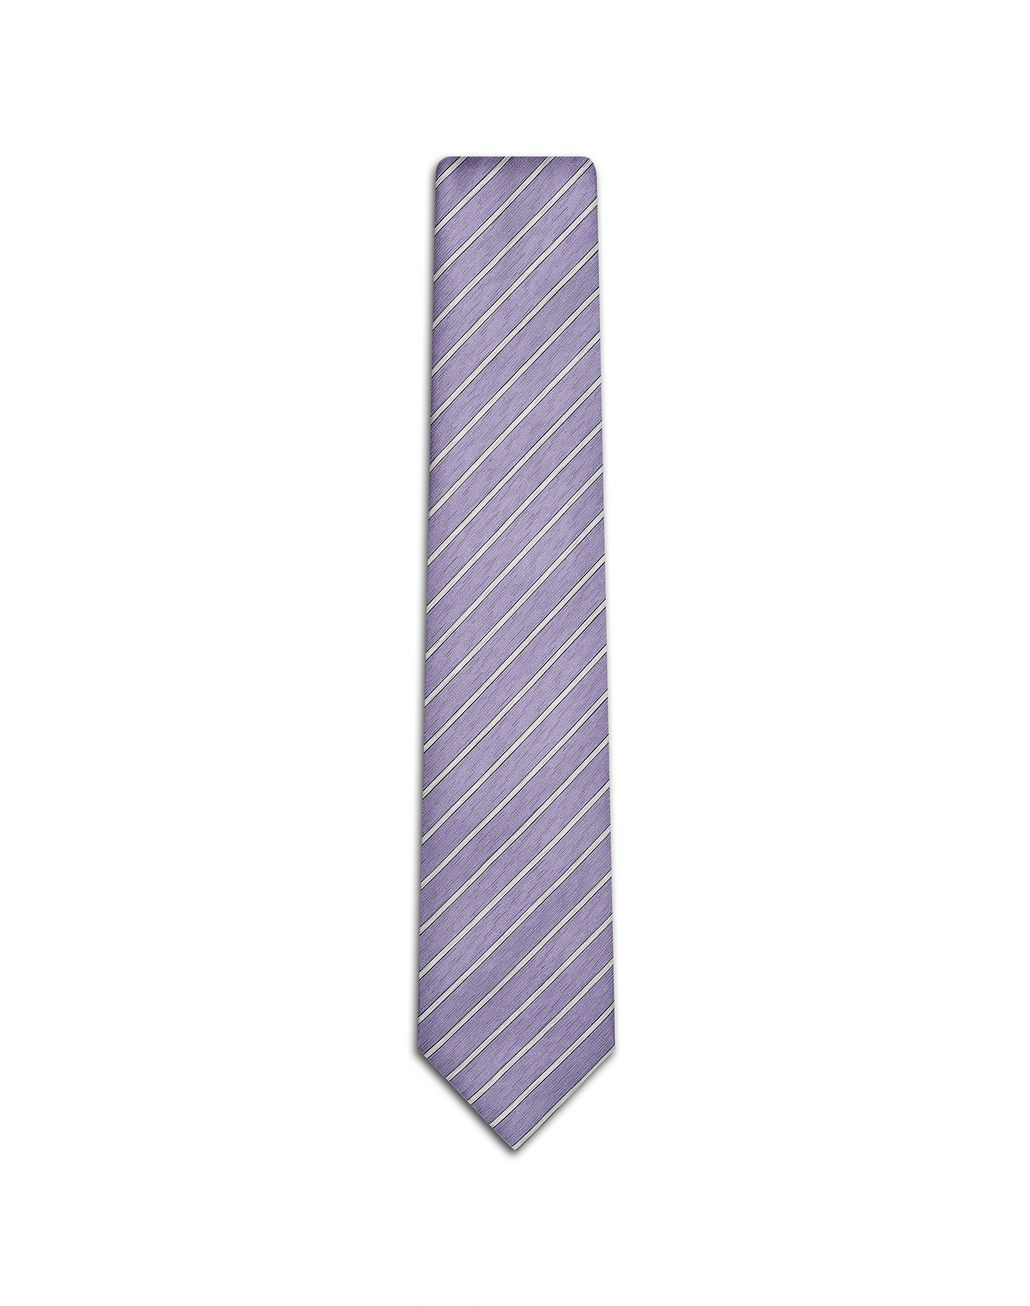 BRIONI Cravate régimentaire lilas et perle Cravate [*** pickupInStoreShippingNotGuaranteed_info ***] f